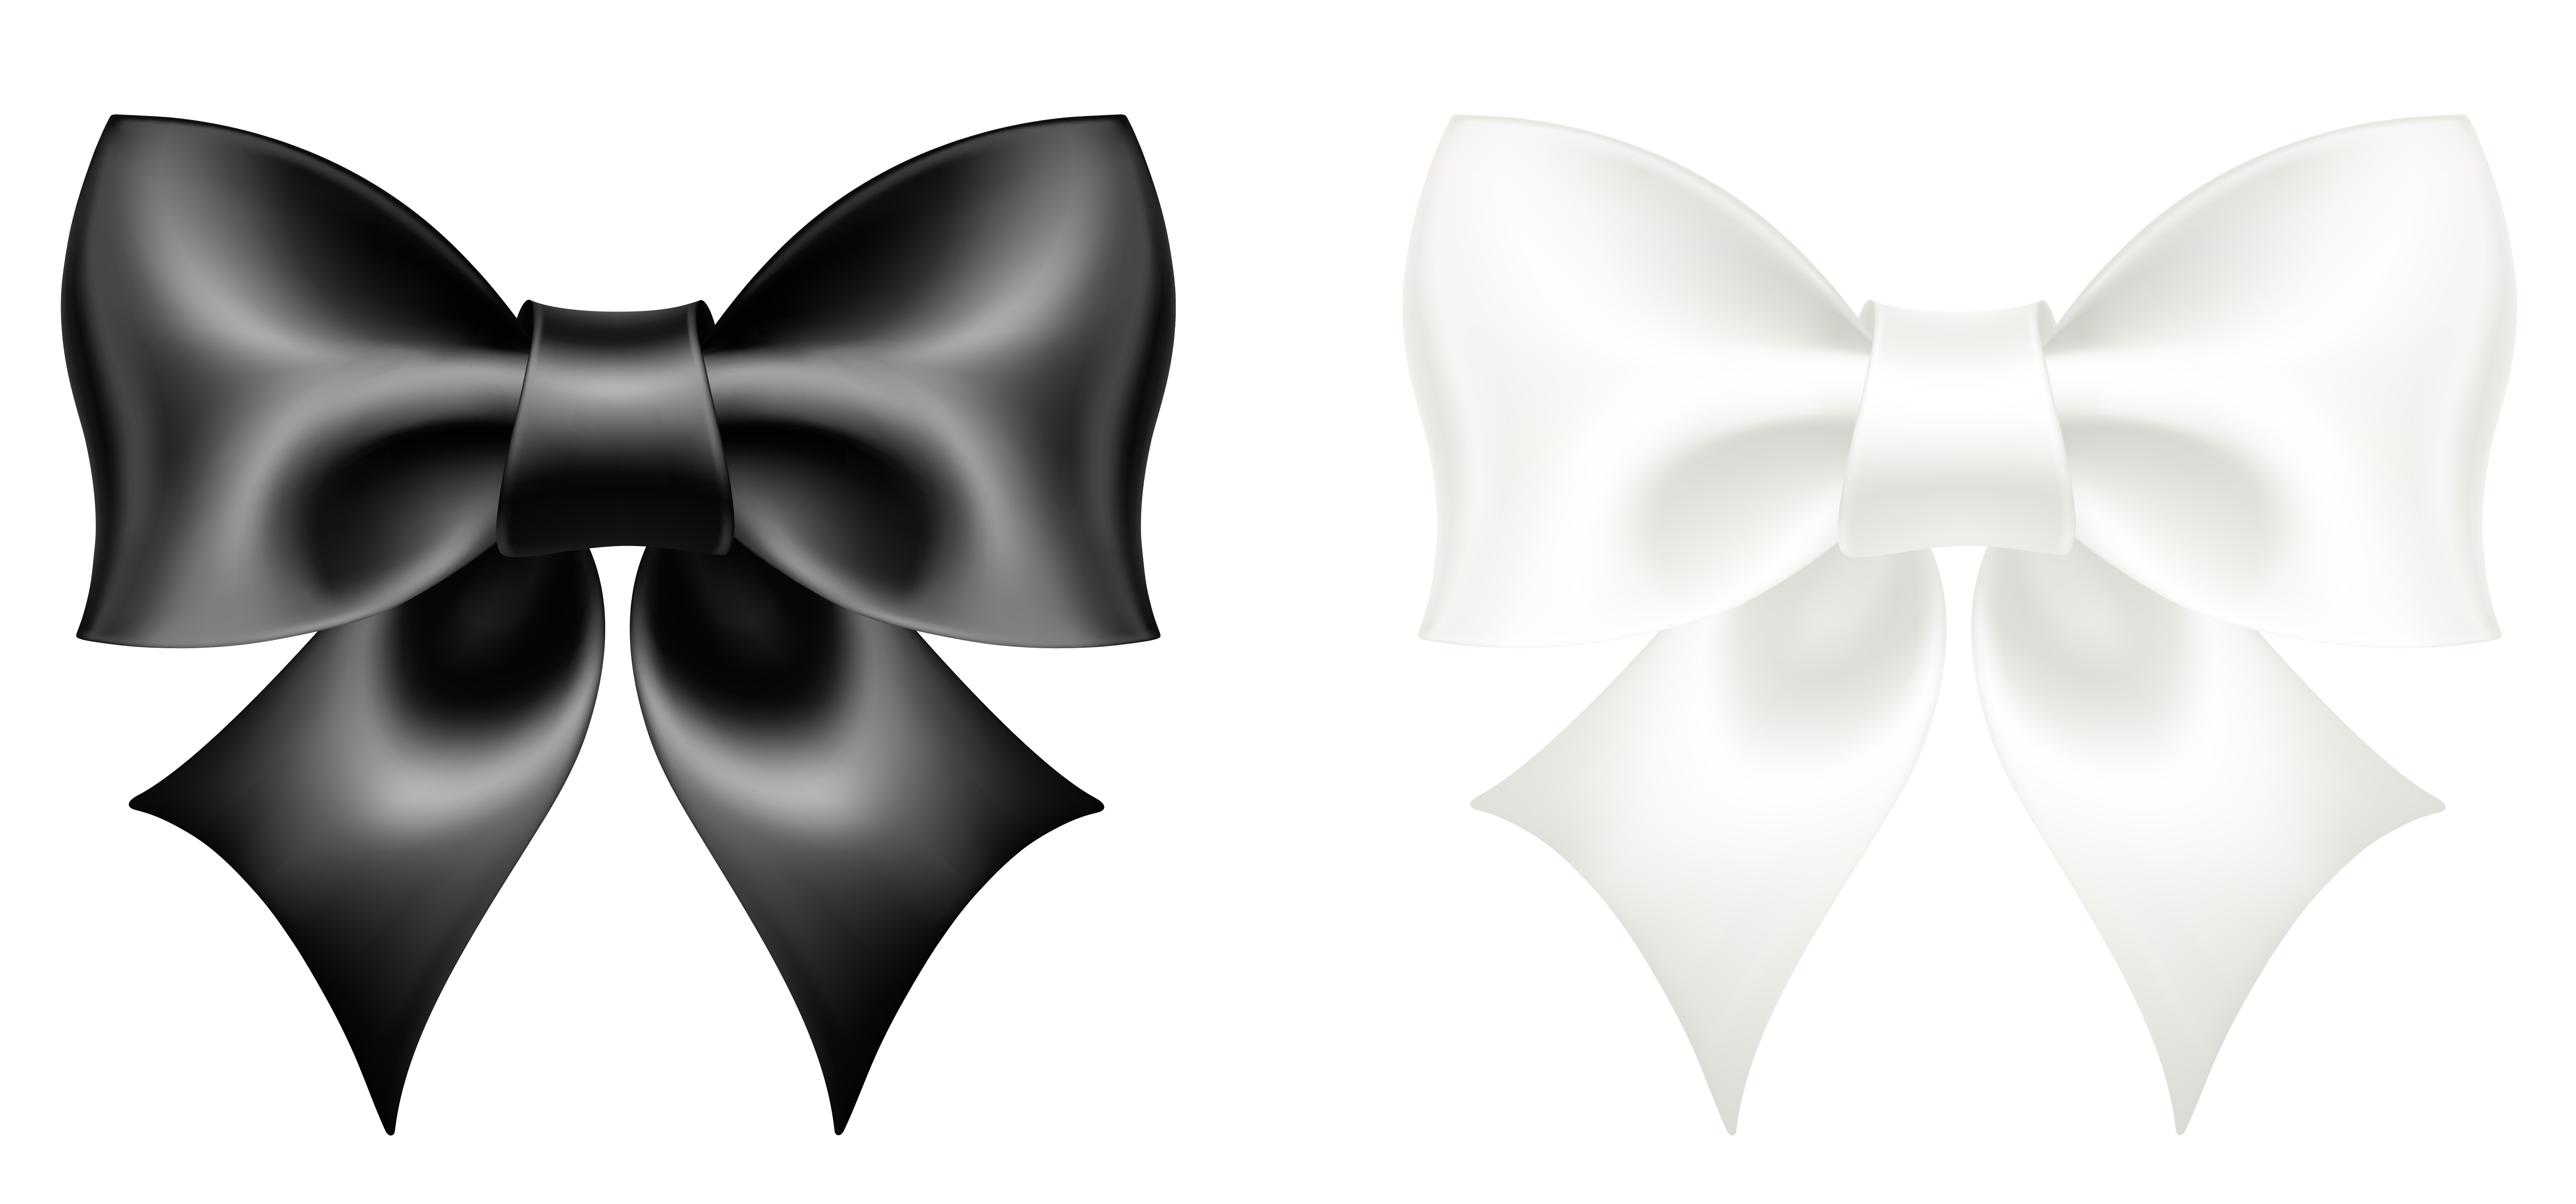 Ribbon bow png picture. Bows clipart black and white